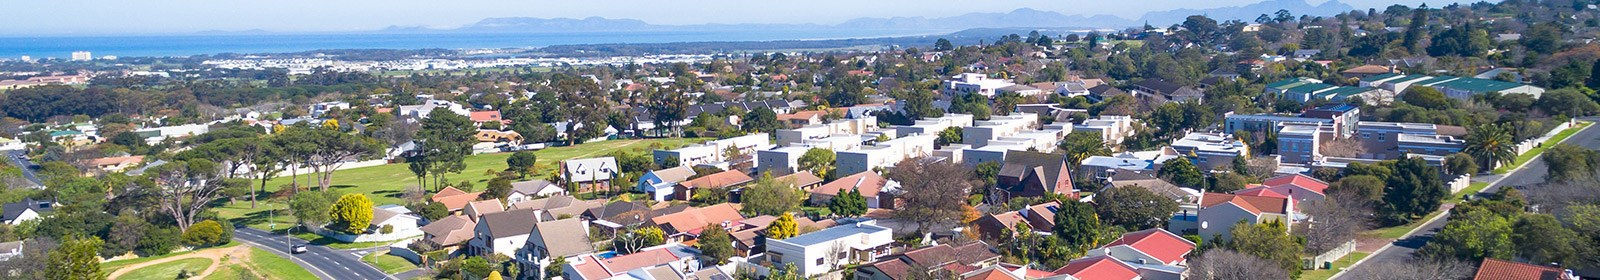 Somerset West property market booming